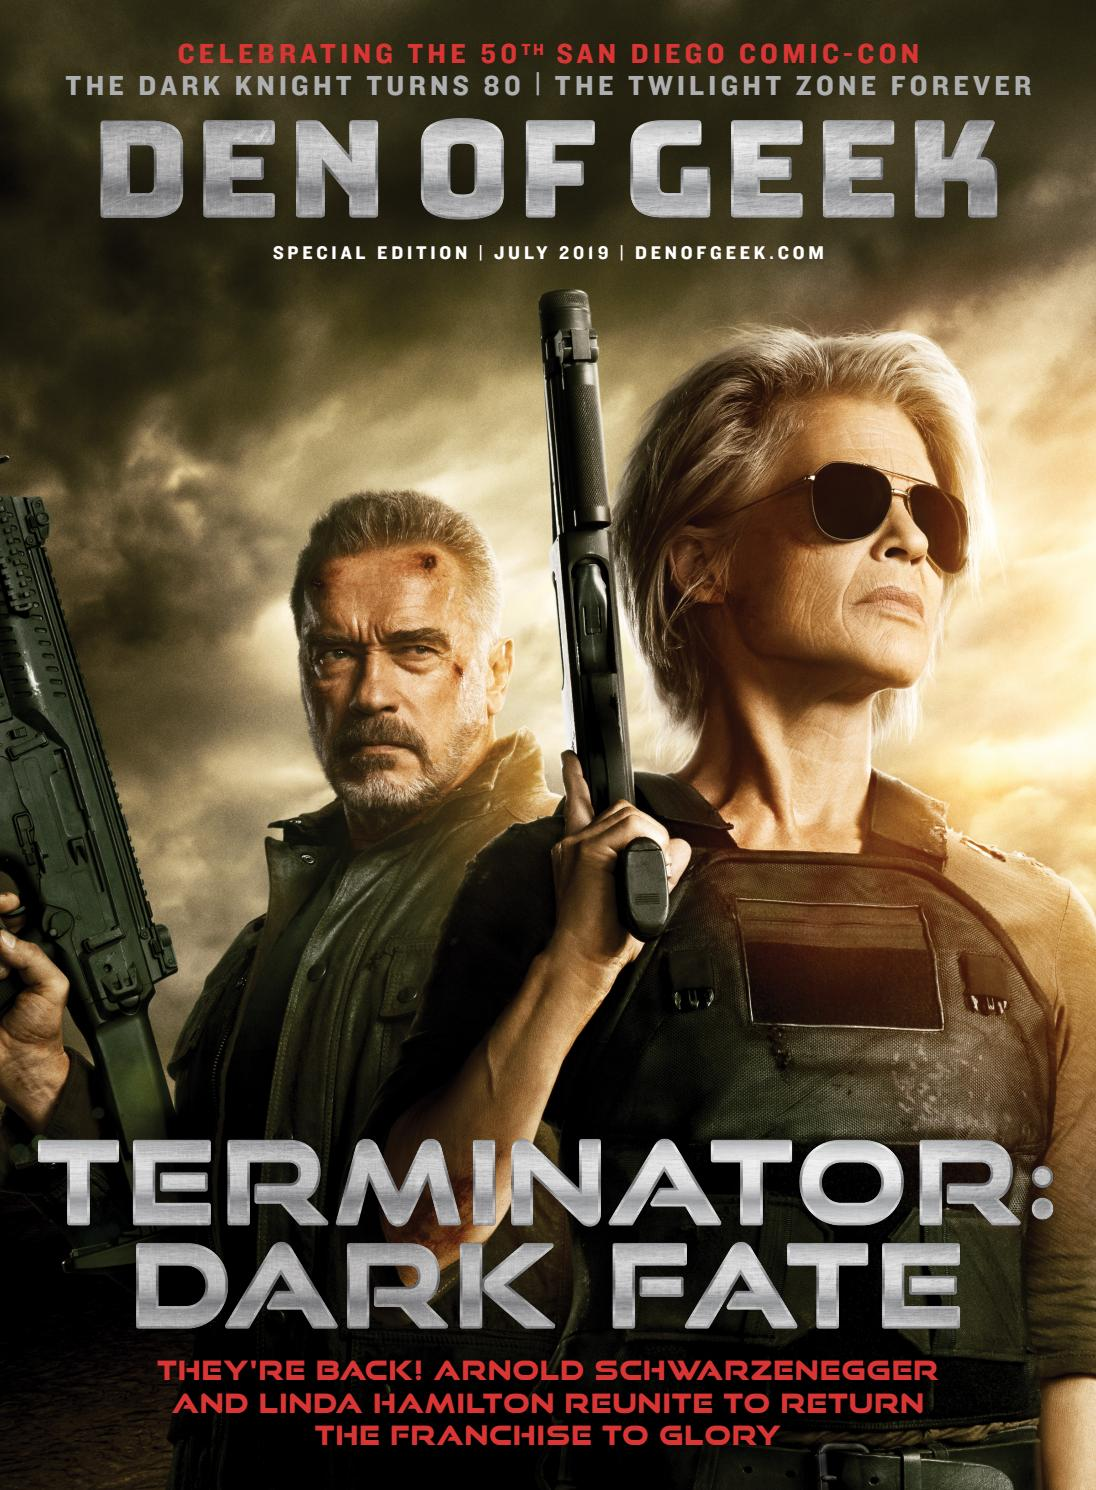 Sdcc 2019 Exclusive Terminator Dark Fate Limited Edition Hall H Poster Print